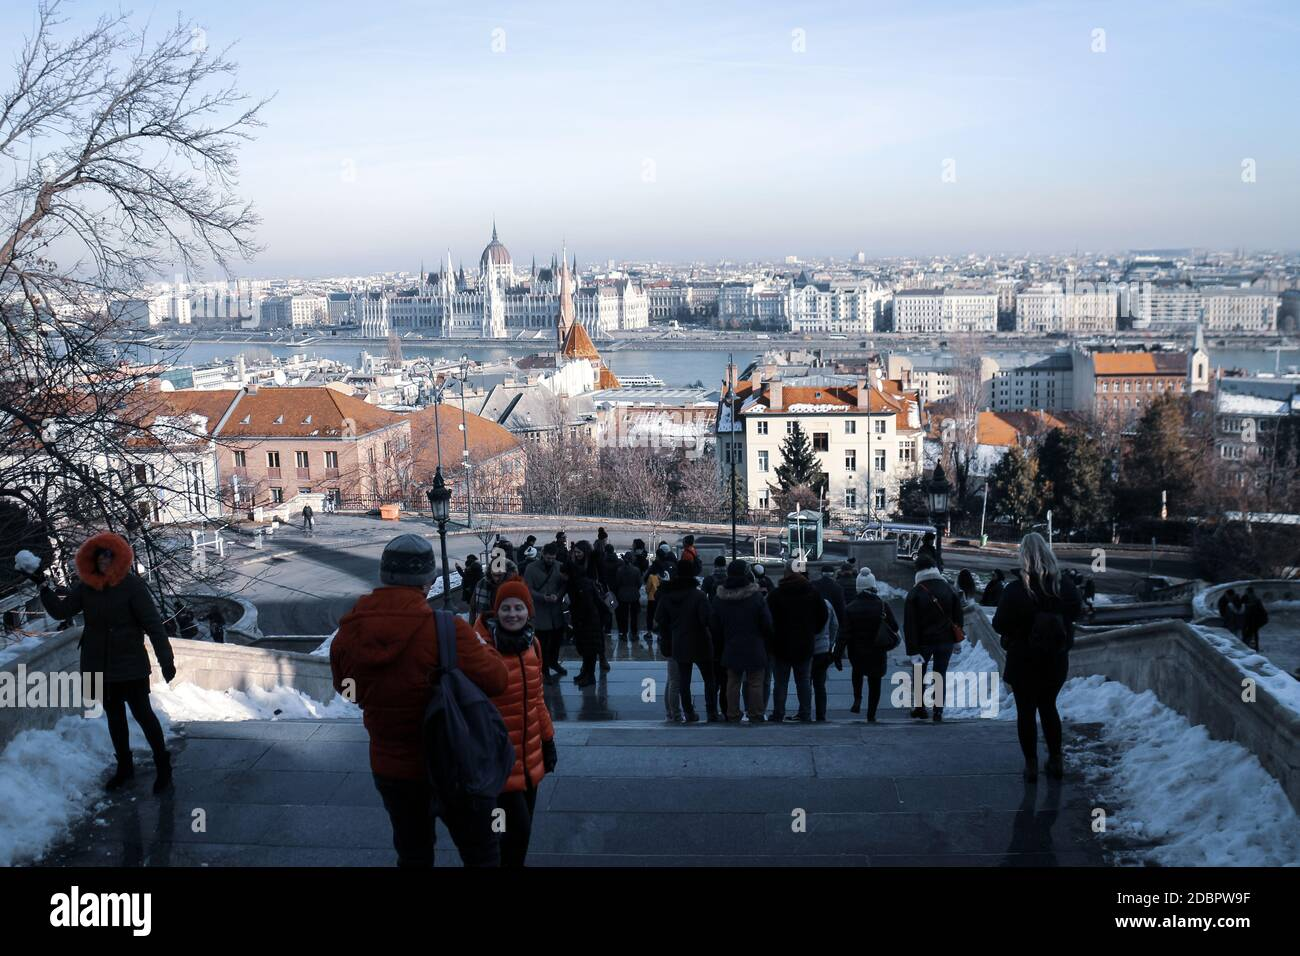 Tourism at Fisherman's Bastion (hungarian: Halászbástya) on a snowy winter day in Budapest, capital of Hungary. Stock Photo